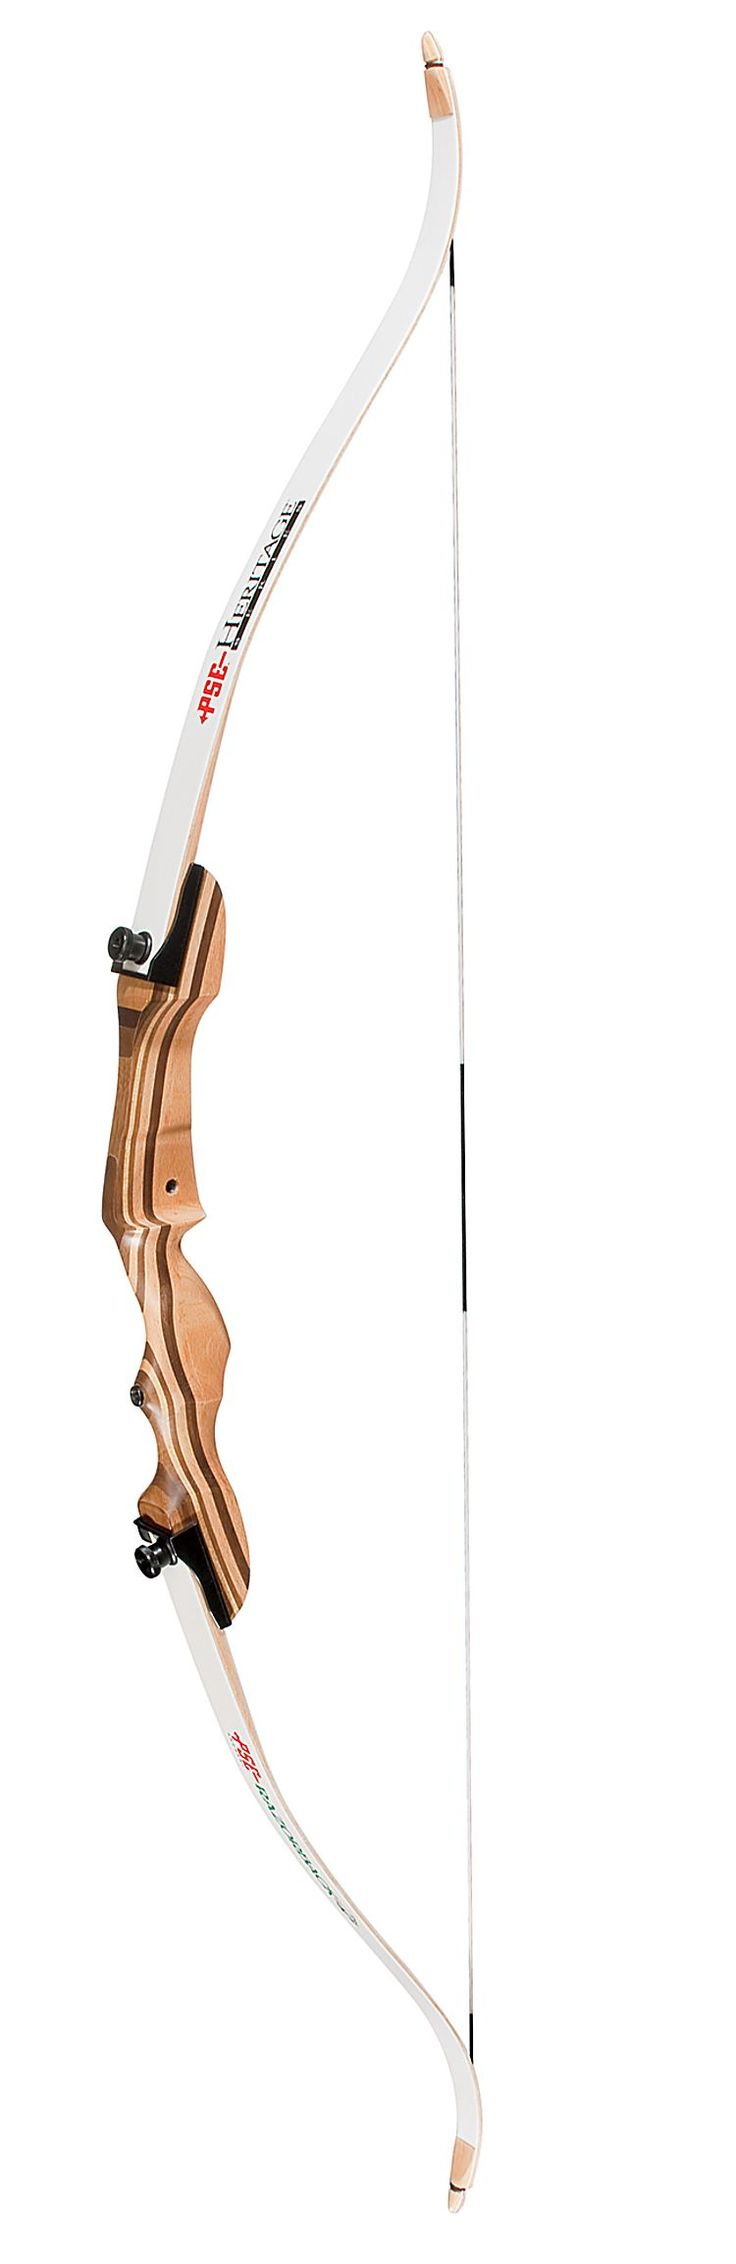 "PSE Archery Razorback Recurve Bow | Bass Pro Shops -- My Specific Measurements: 62"" length, 25 lb. draw, Right-handed, 28"" arrows"